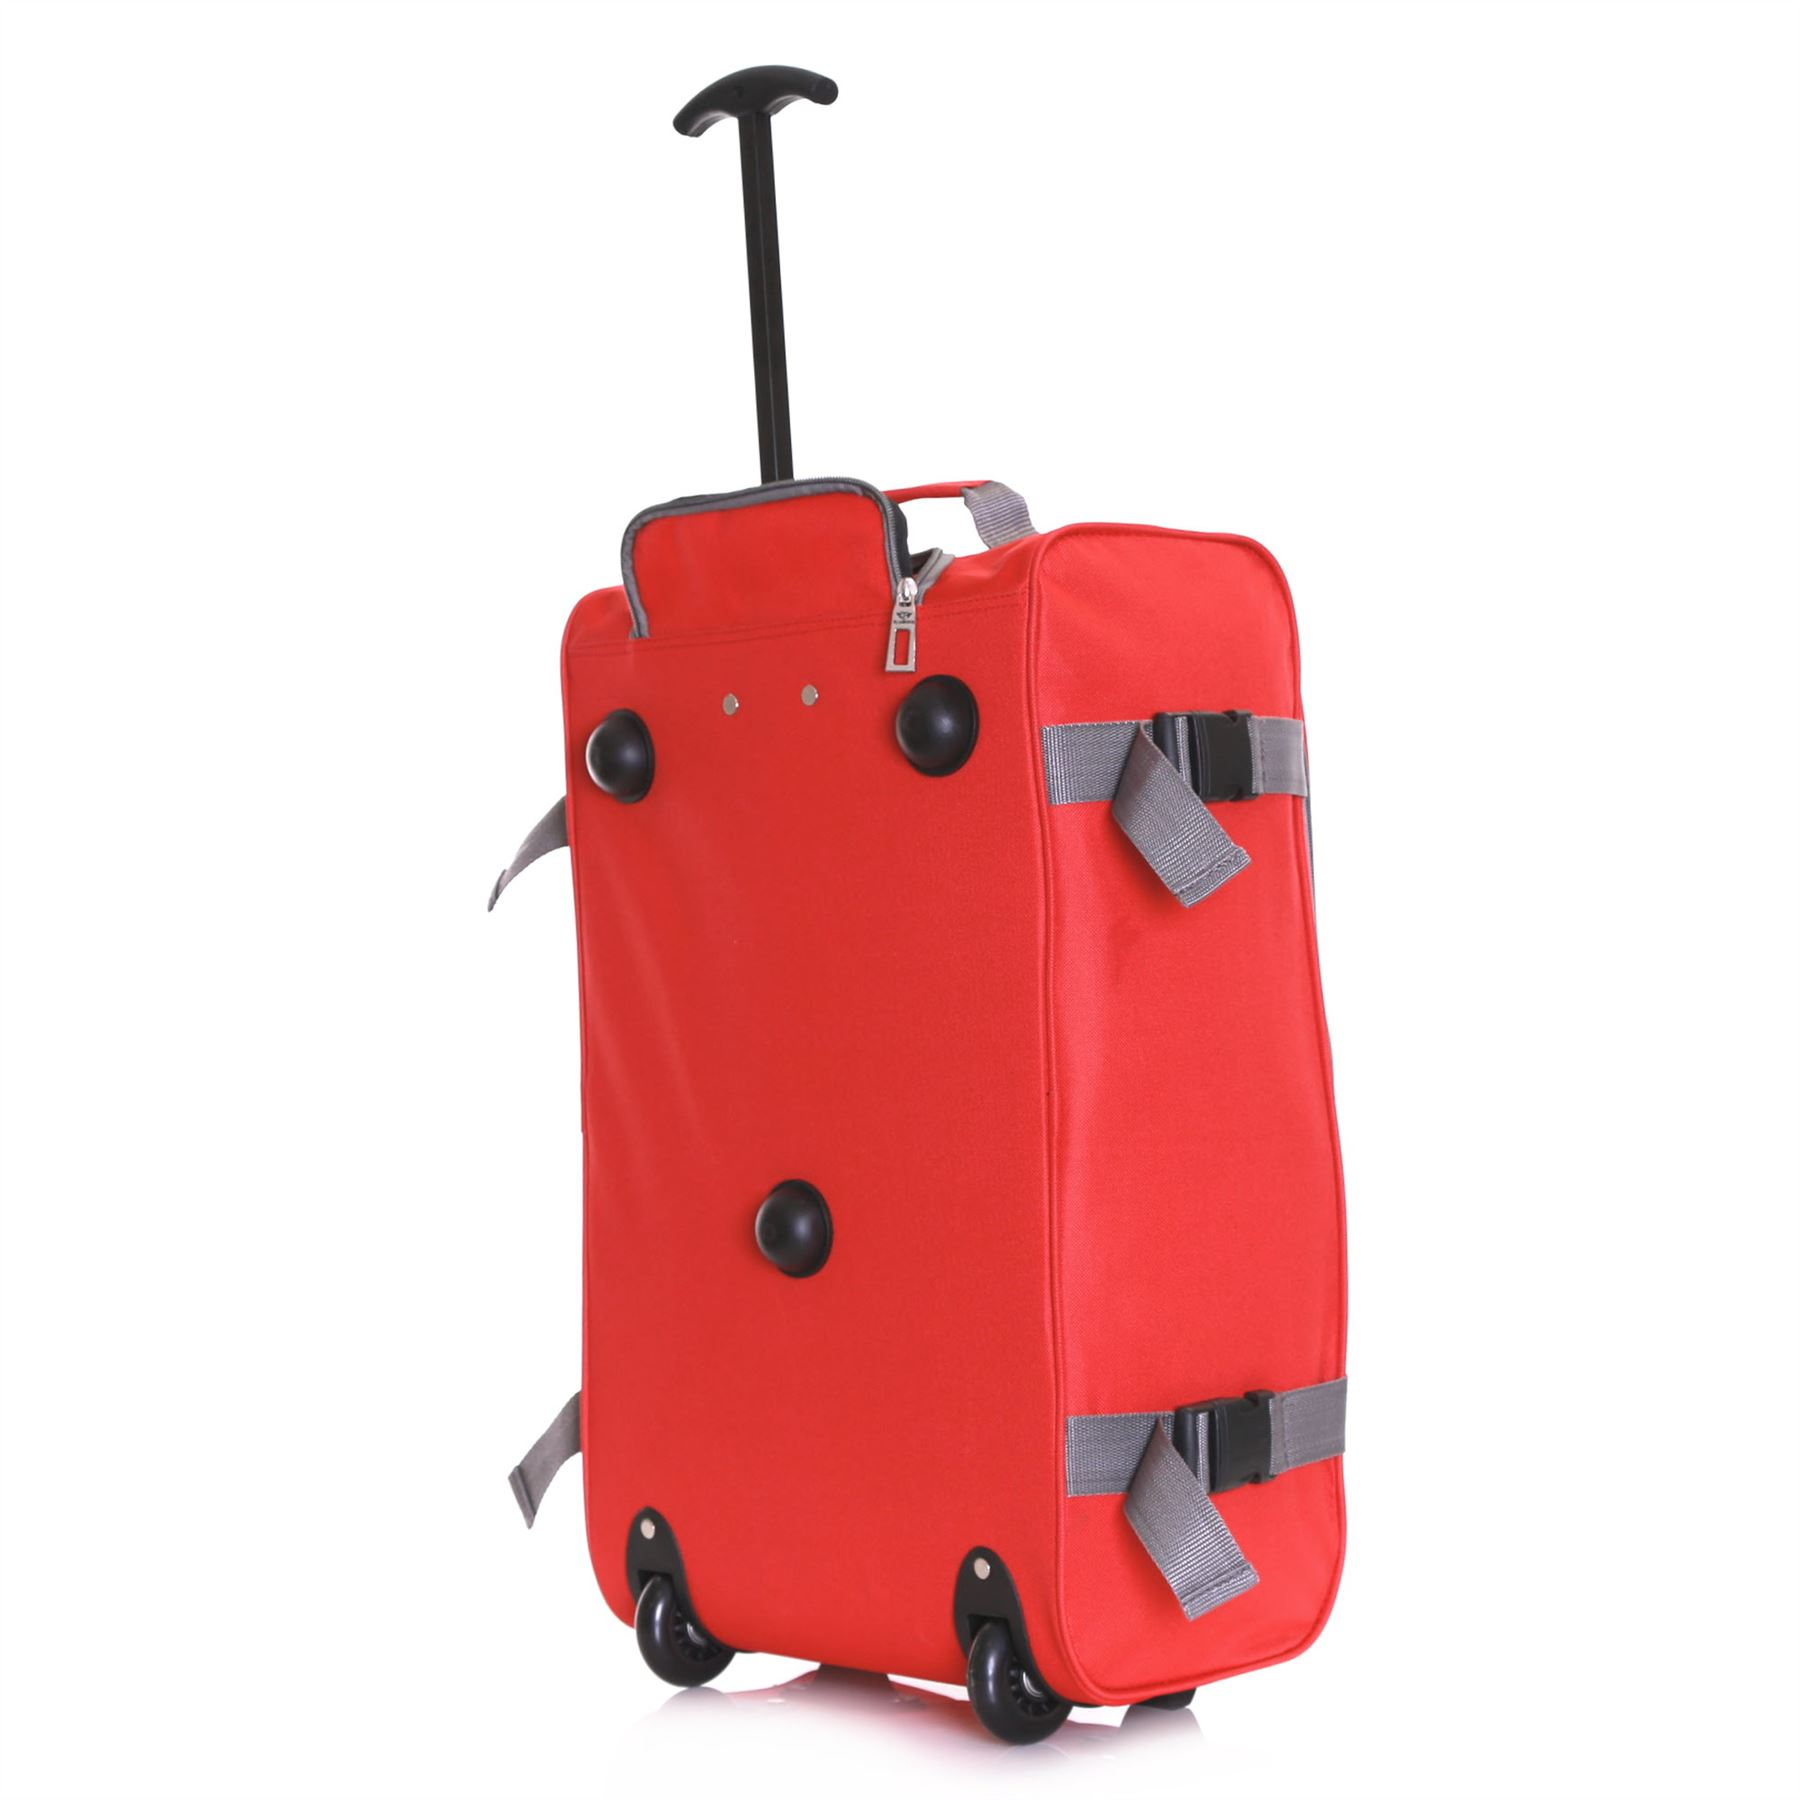 Ryanair-Easyjet-Set-of-2-Cabin-Approved-Hand-Trolley-Suitcases-Luggage-Case-Bags thumbnail 18